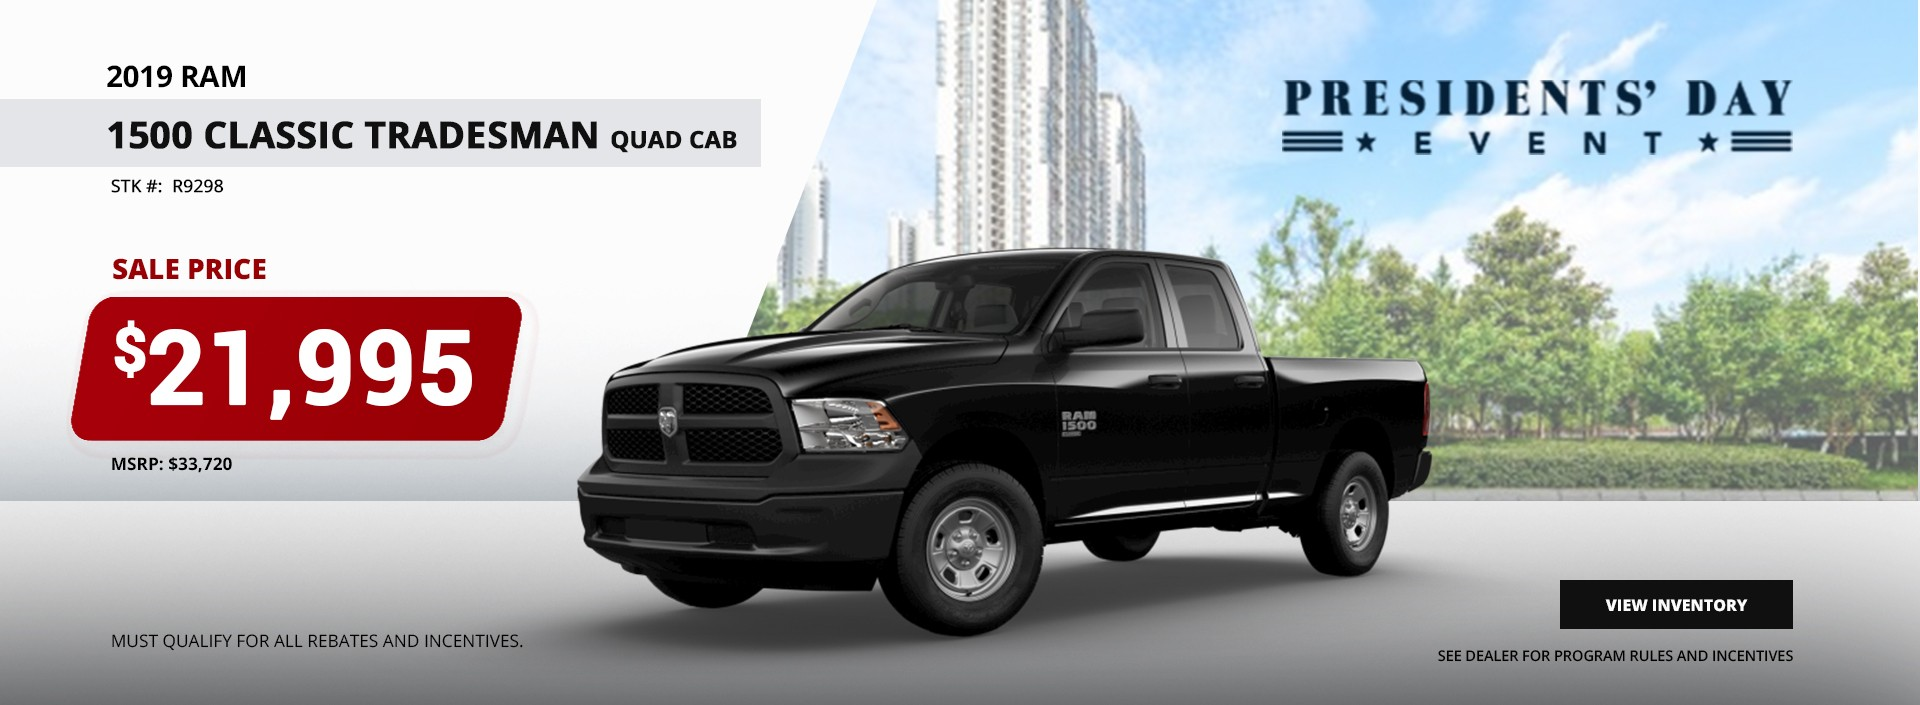 2019 Ram 1500 Classic Tradesman Quad Cab Sales Price $21,995 at the President's Day Sales Event